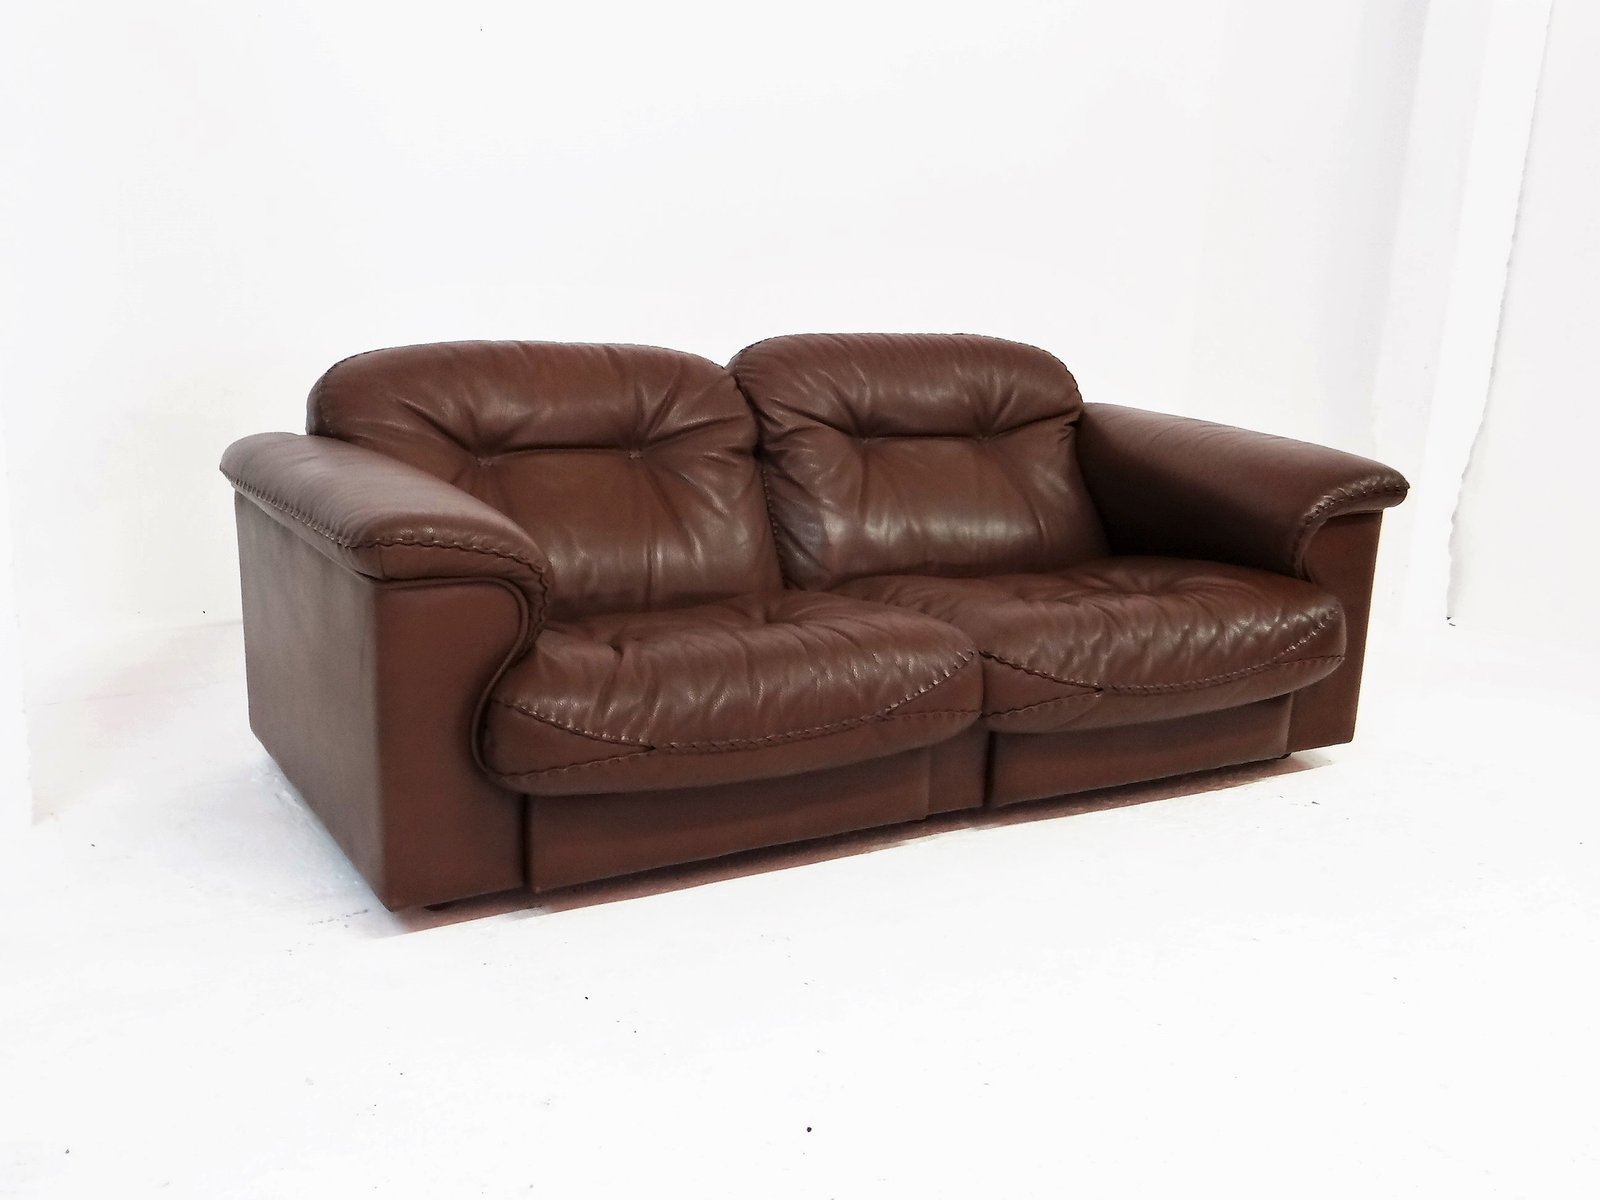 de sede sofa vintage dillards natuzzi ds 101 lounging from for sale at pamono